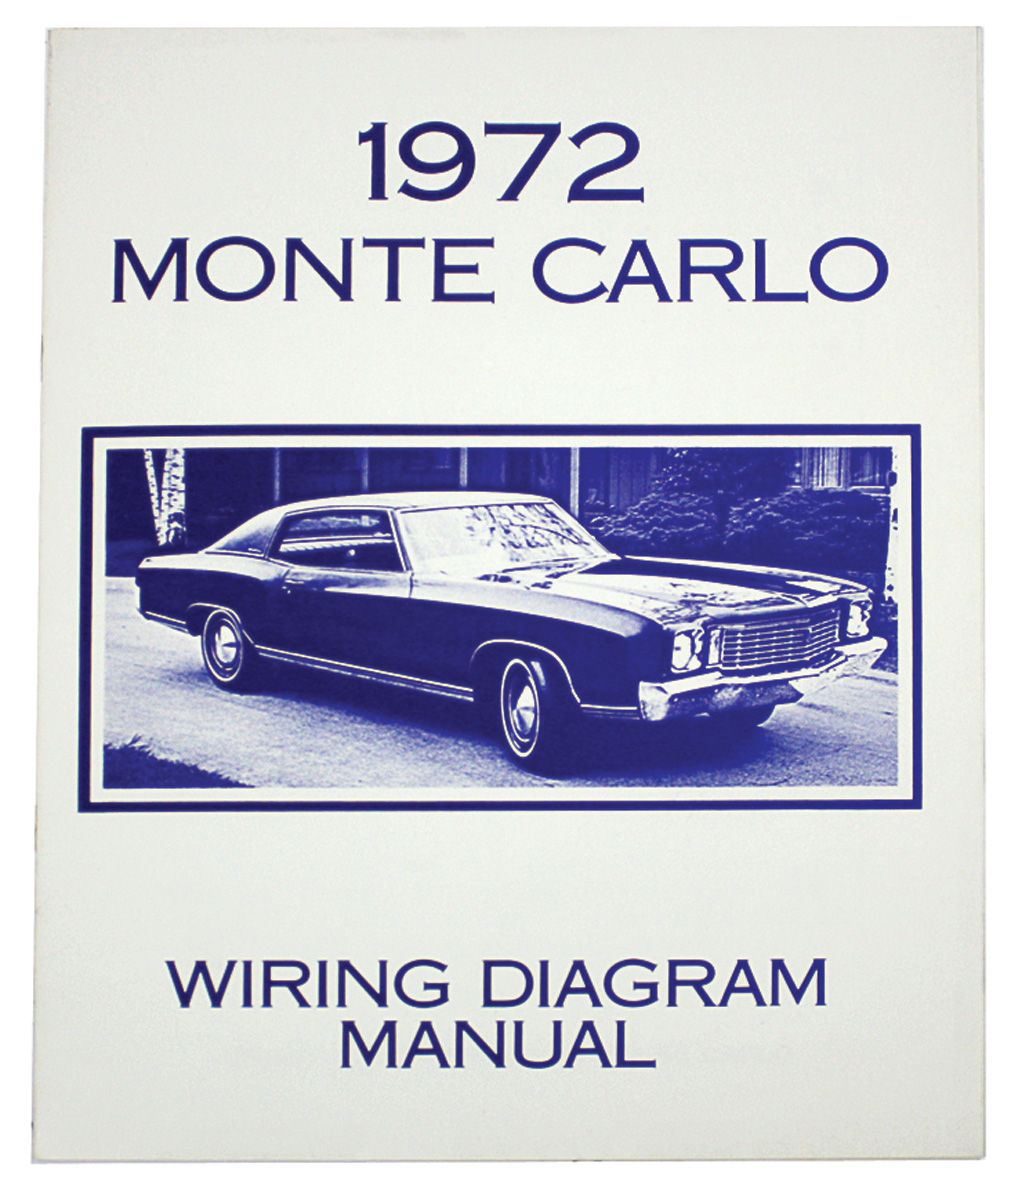 Monte Carlo Wiring Diagram Manuals Fits 1976 Monte Carlo